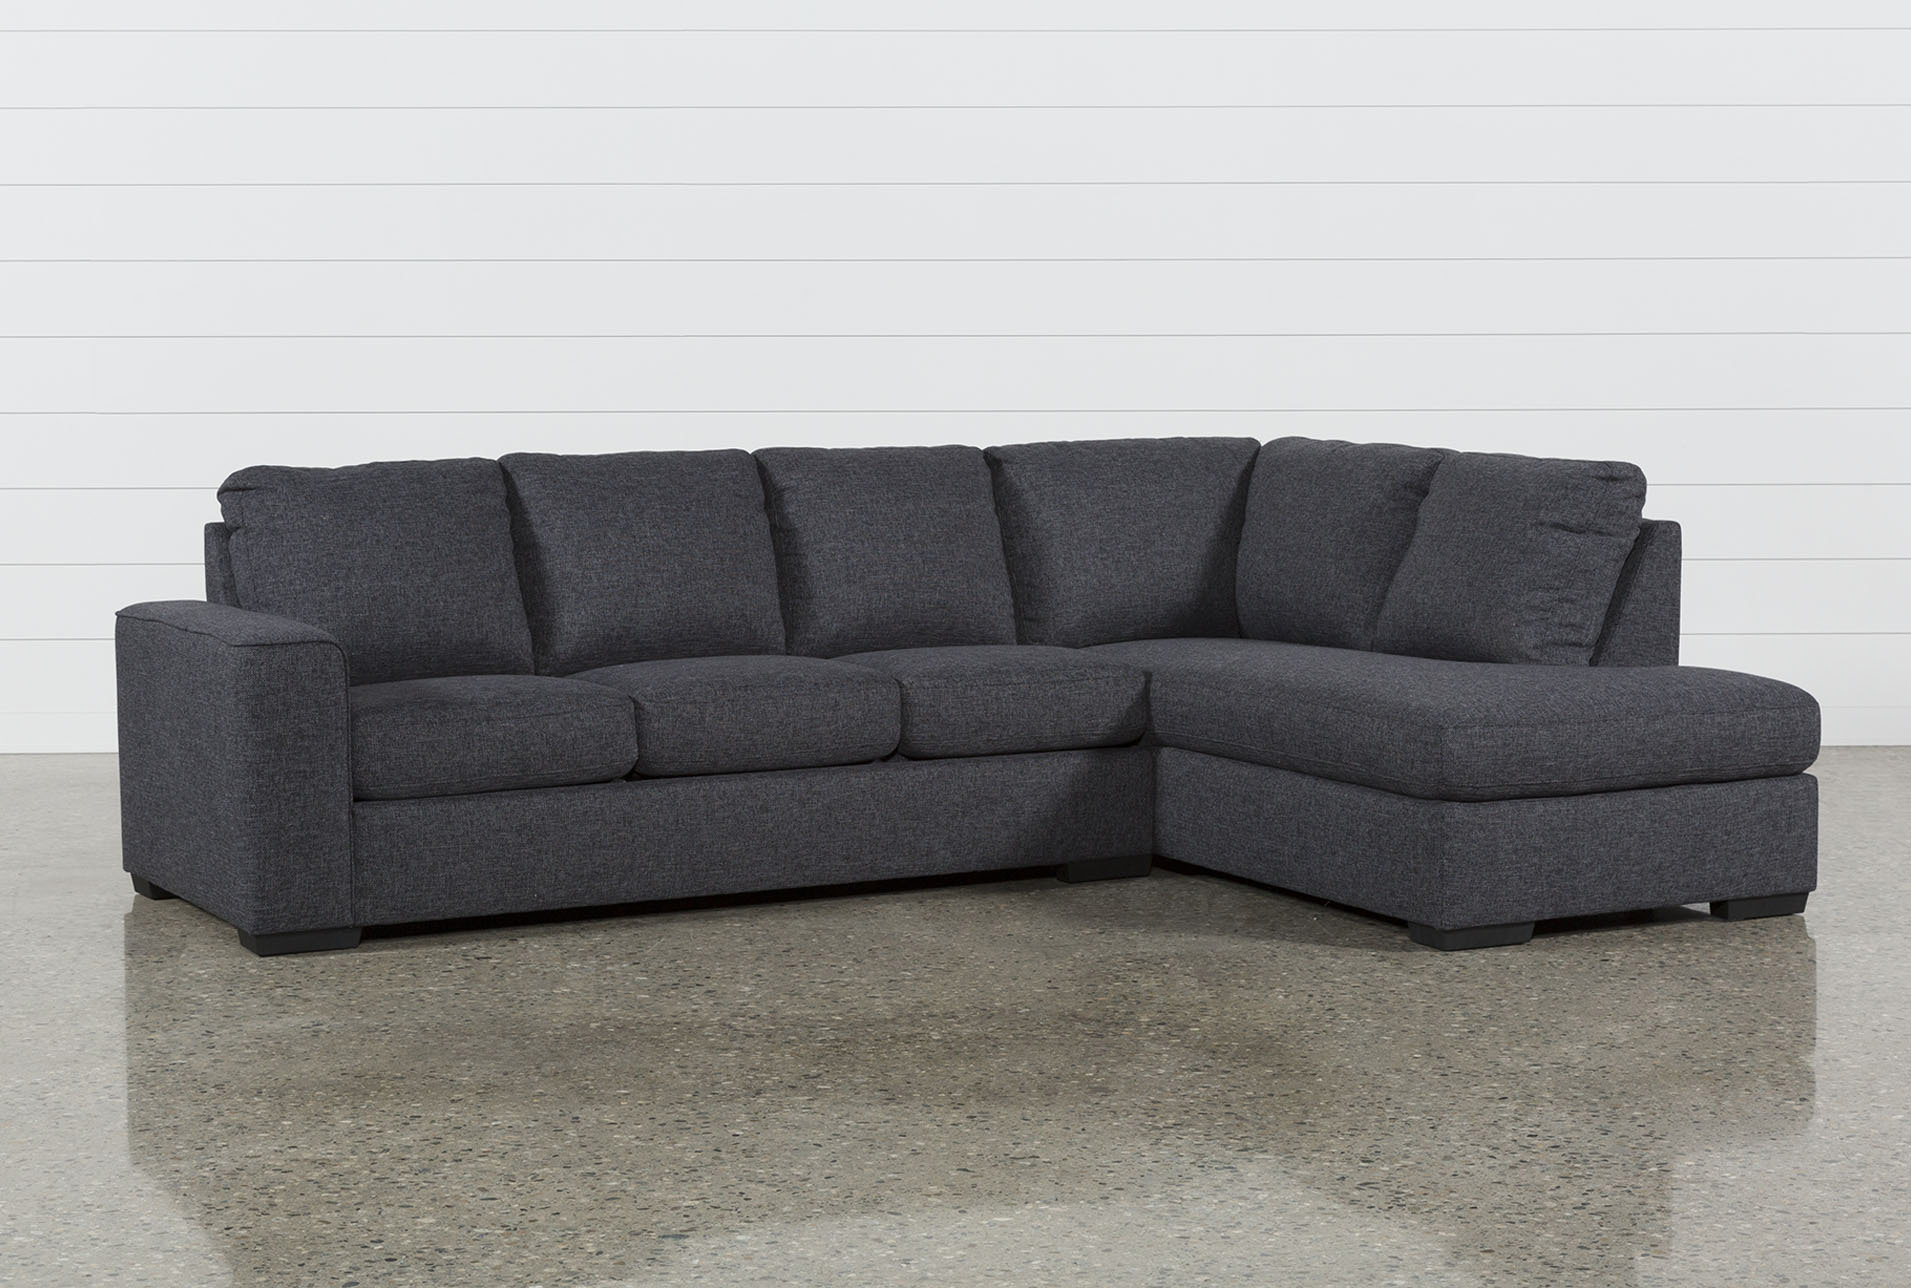 Lucy Dark Grey 2 Piece Sleeper Sectional W/Raf Chaise | Living Spaces